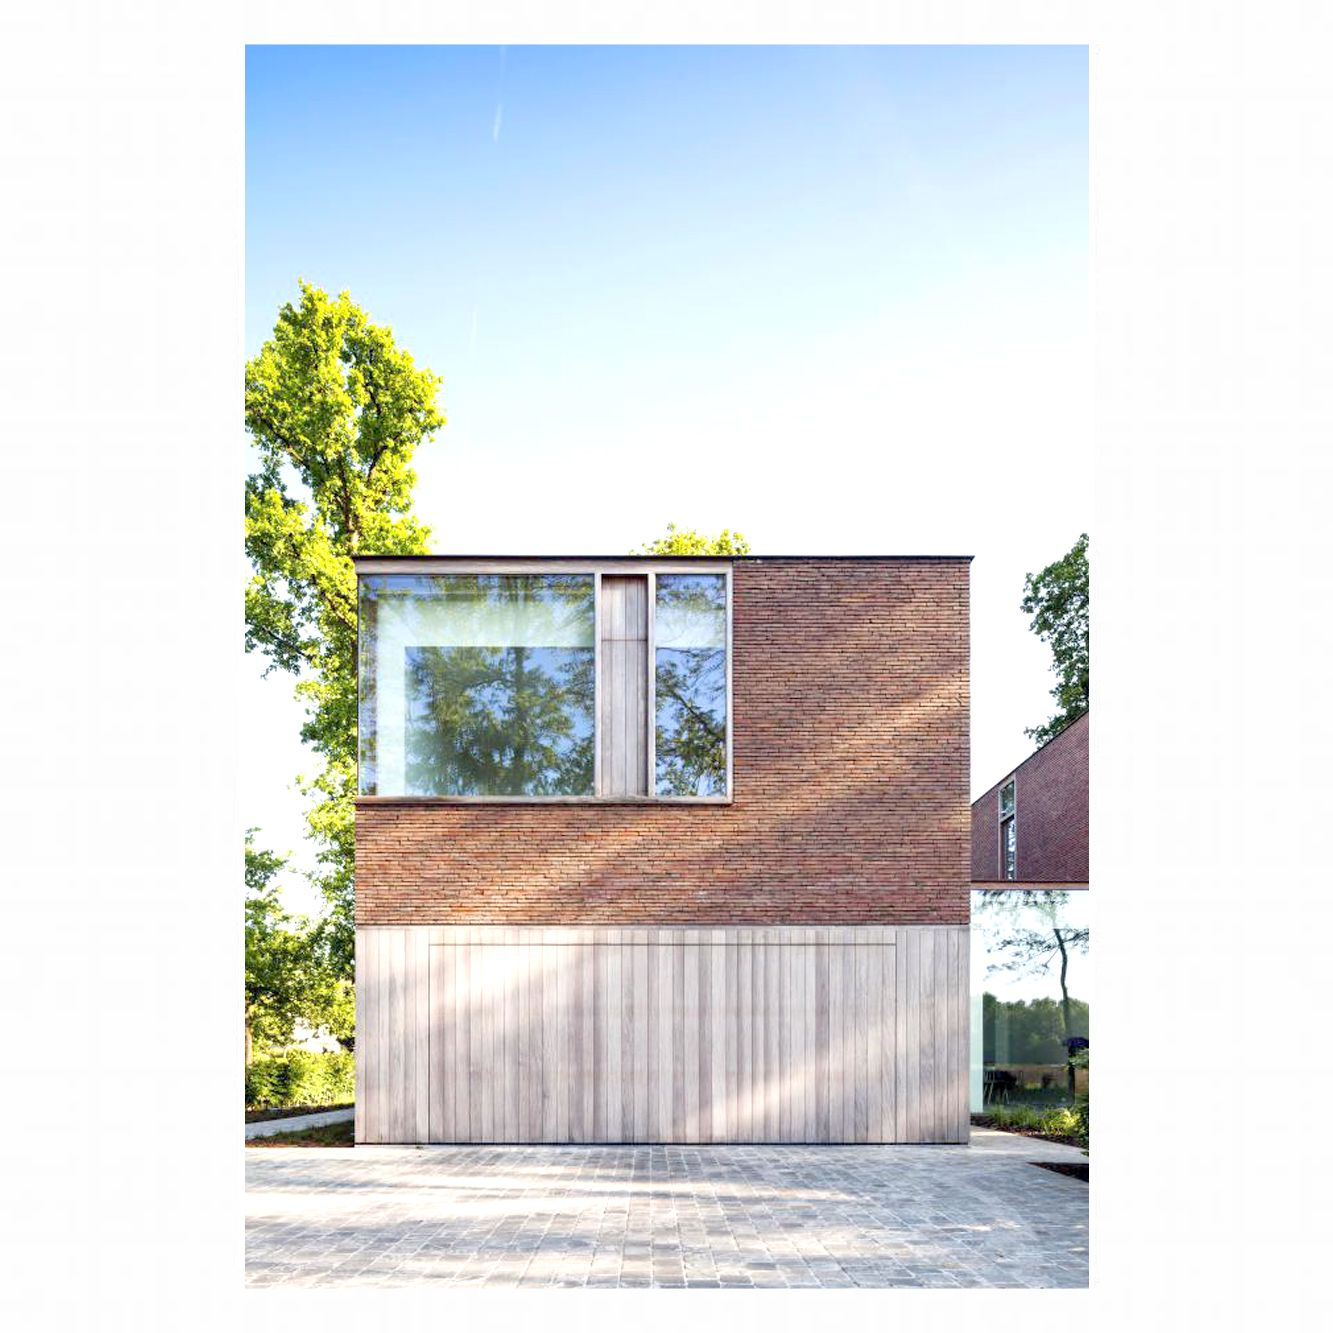 Aldington Craig And Collinge 3 House And A Garden   Google Search |  Architecture | Pinterest | House, Architecture And Arch